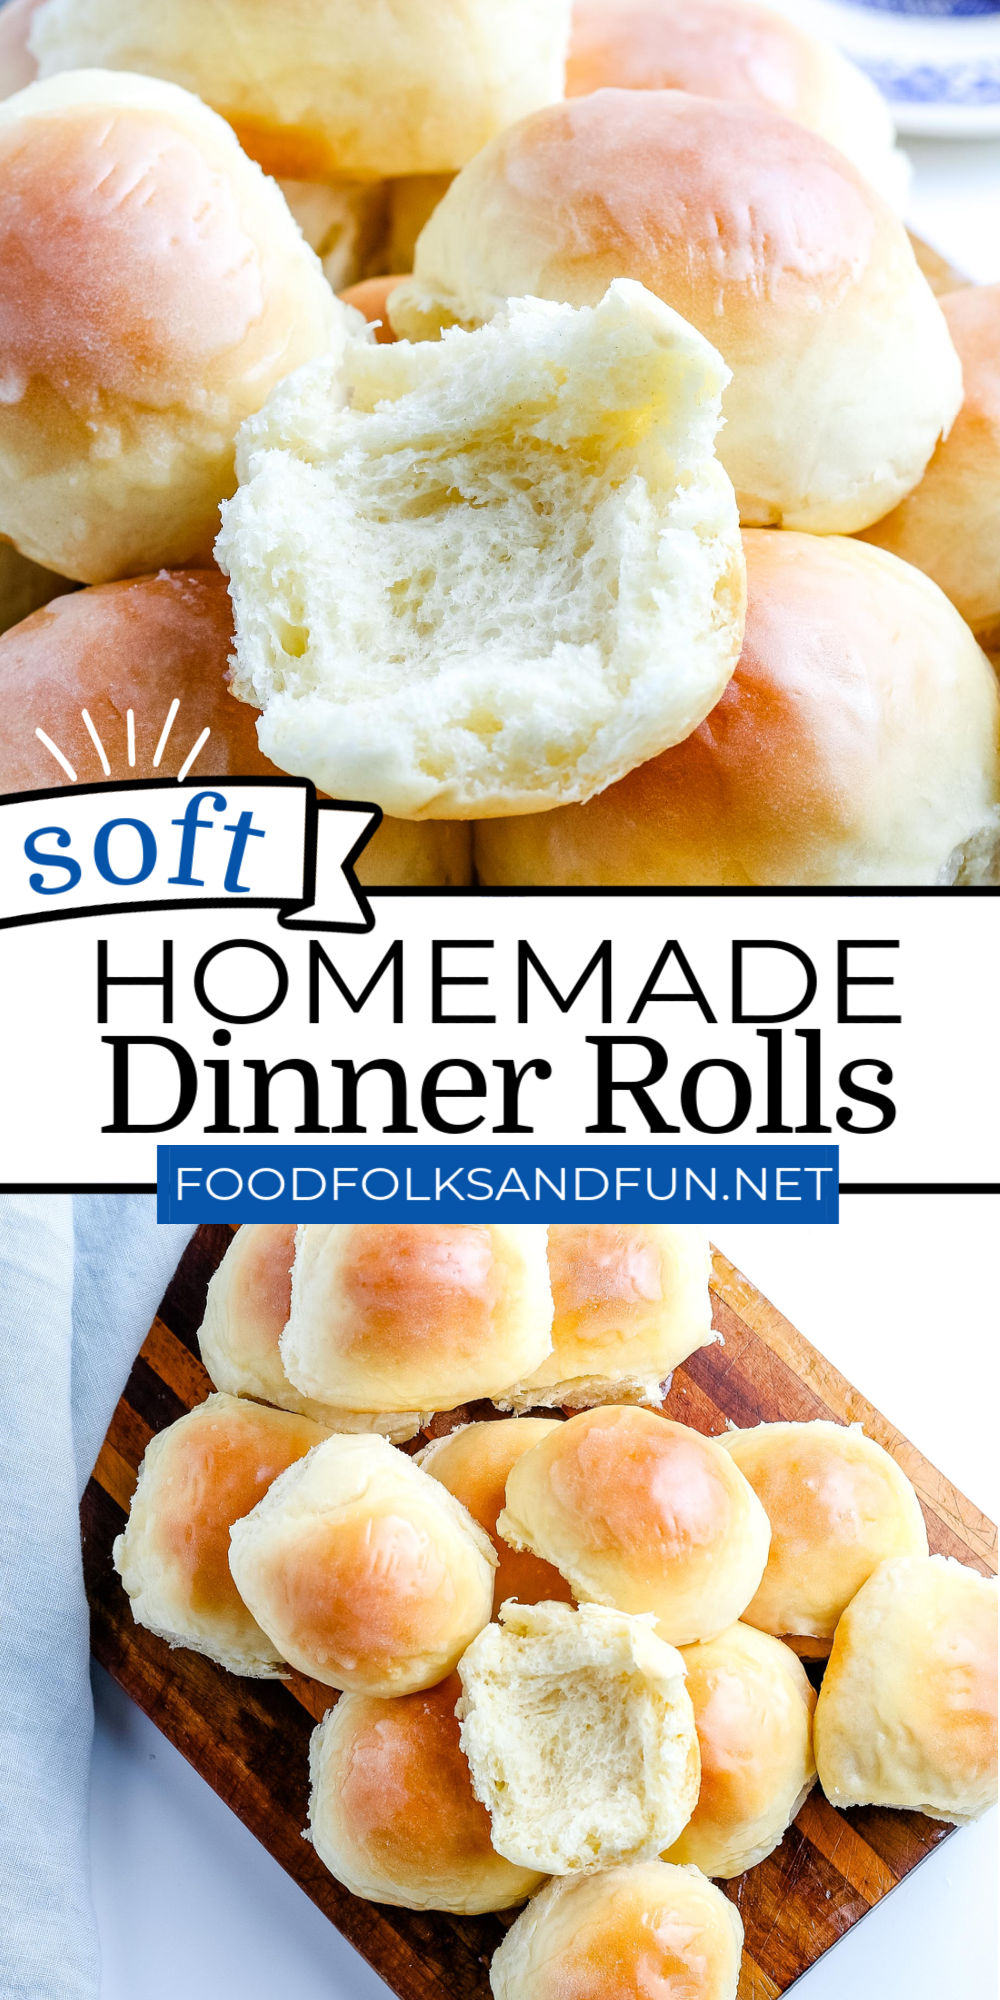 This Homemade Dinner Rolls recipe makes the softest, and fluffiest rolls brushed with melted butter and made with simple pantry ingredients. via @foodfolksandfun